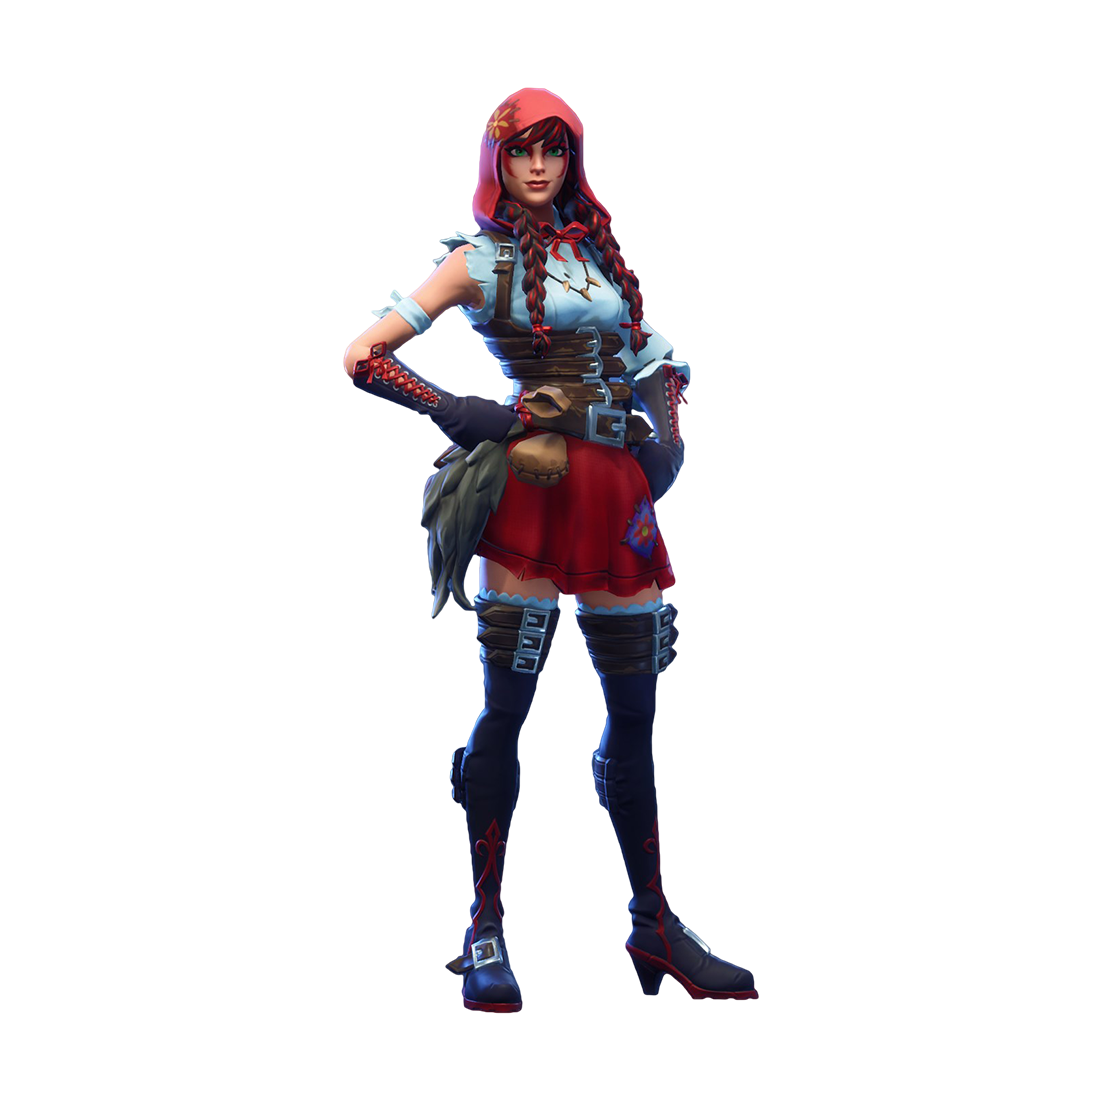 Fortnite Fable Skin Epic Outfit   Fortnite Skins 1100x1100